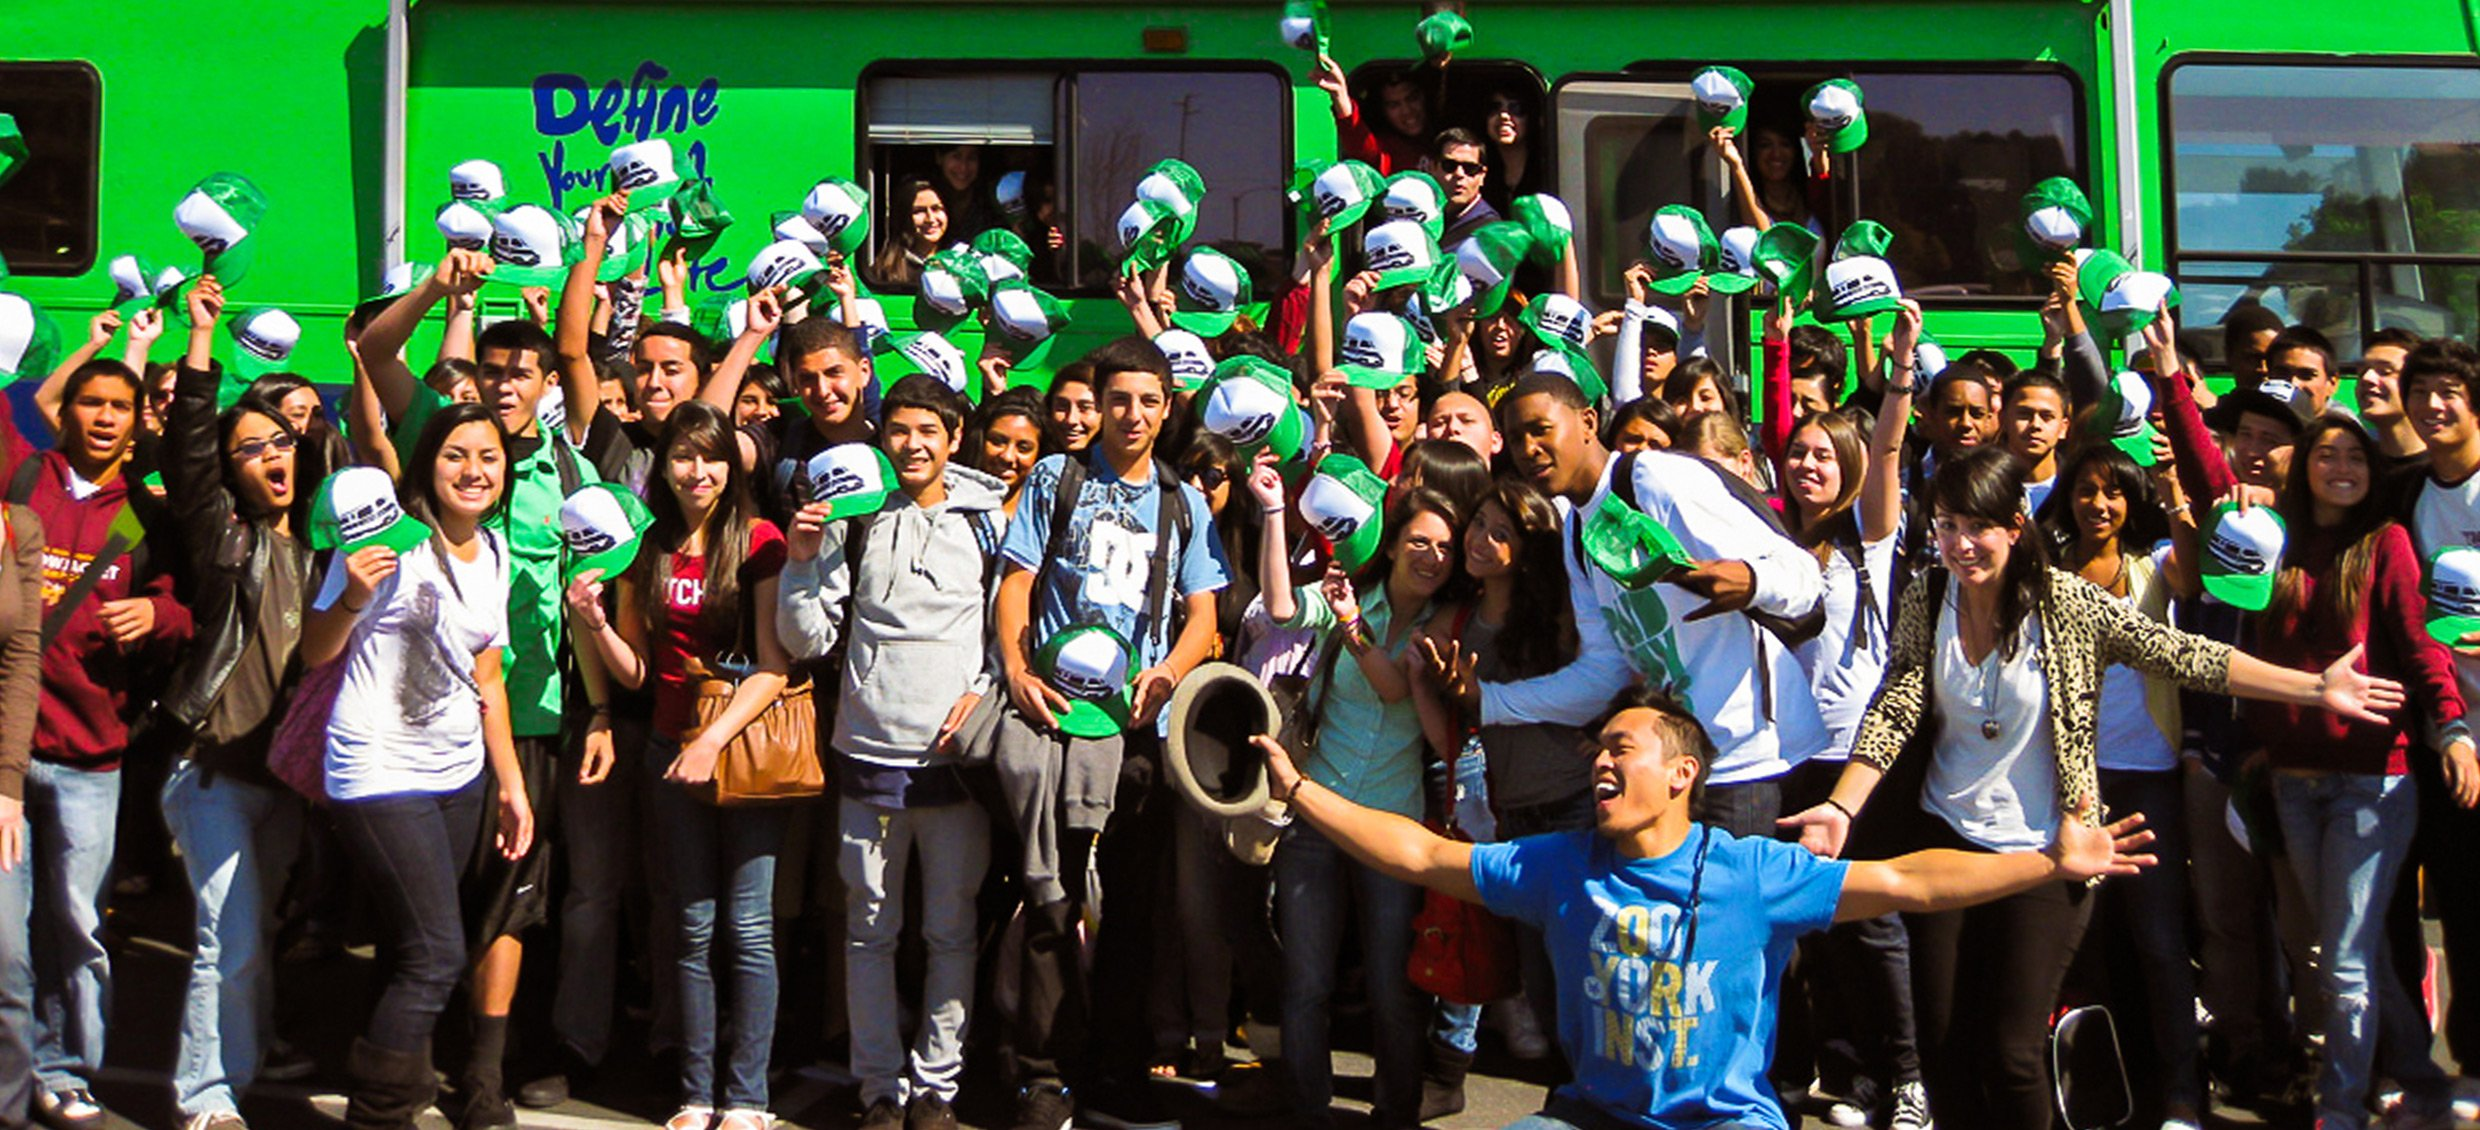 A group of students show off their Roadtrip Nation swag in front of the green RV